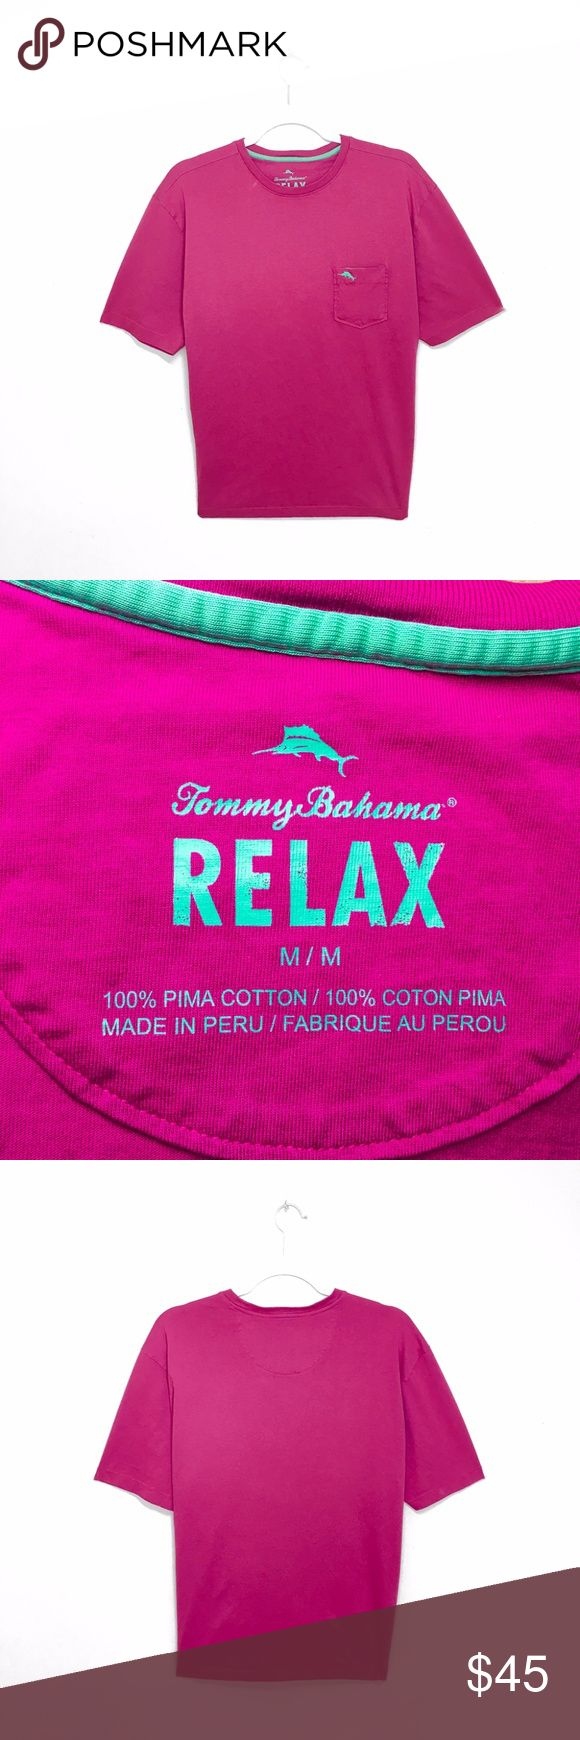 Tommy Bahama Men's Magenta Bali Pocket T-Shirt ---Excellent Condition | MSRP $65.50---  Sun-washed neon coloring brings vintage brightness to a classic pocket T-shirt, cut from ultrasoft & luxurious pima-cotton jersey.  -Relaxed fit -Chest patch pocket with logo embroidery (seafoam green) -100% pima cotton -Machine wash, tumble dry Tommy Bahama Shirts Tees - Short Sleeve